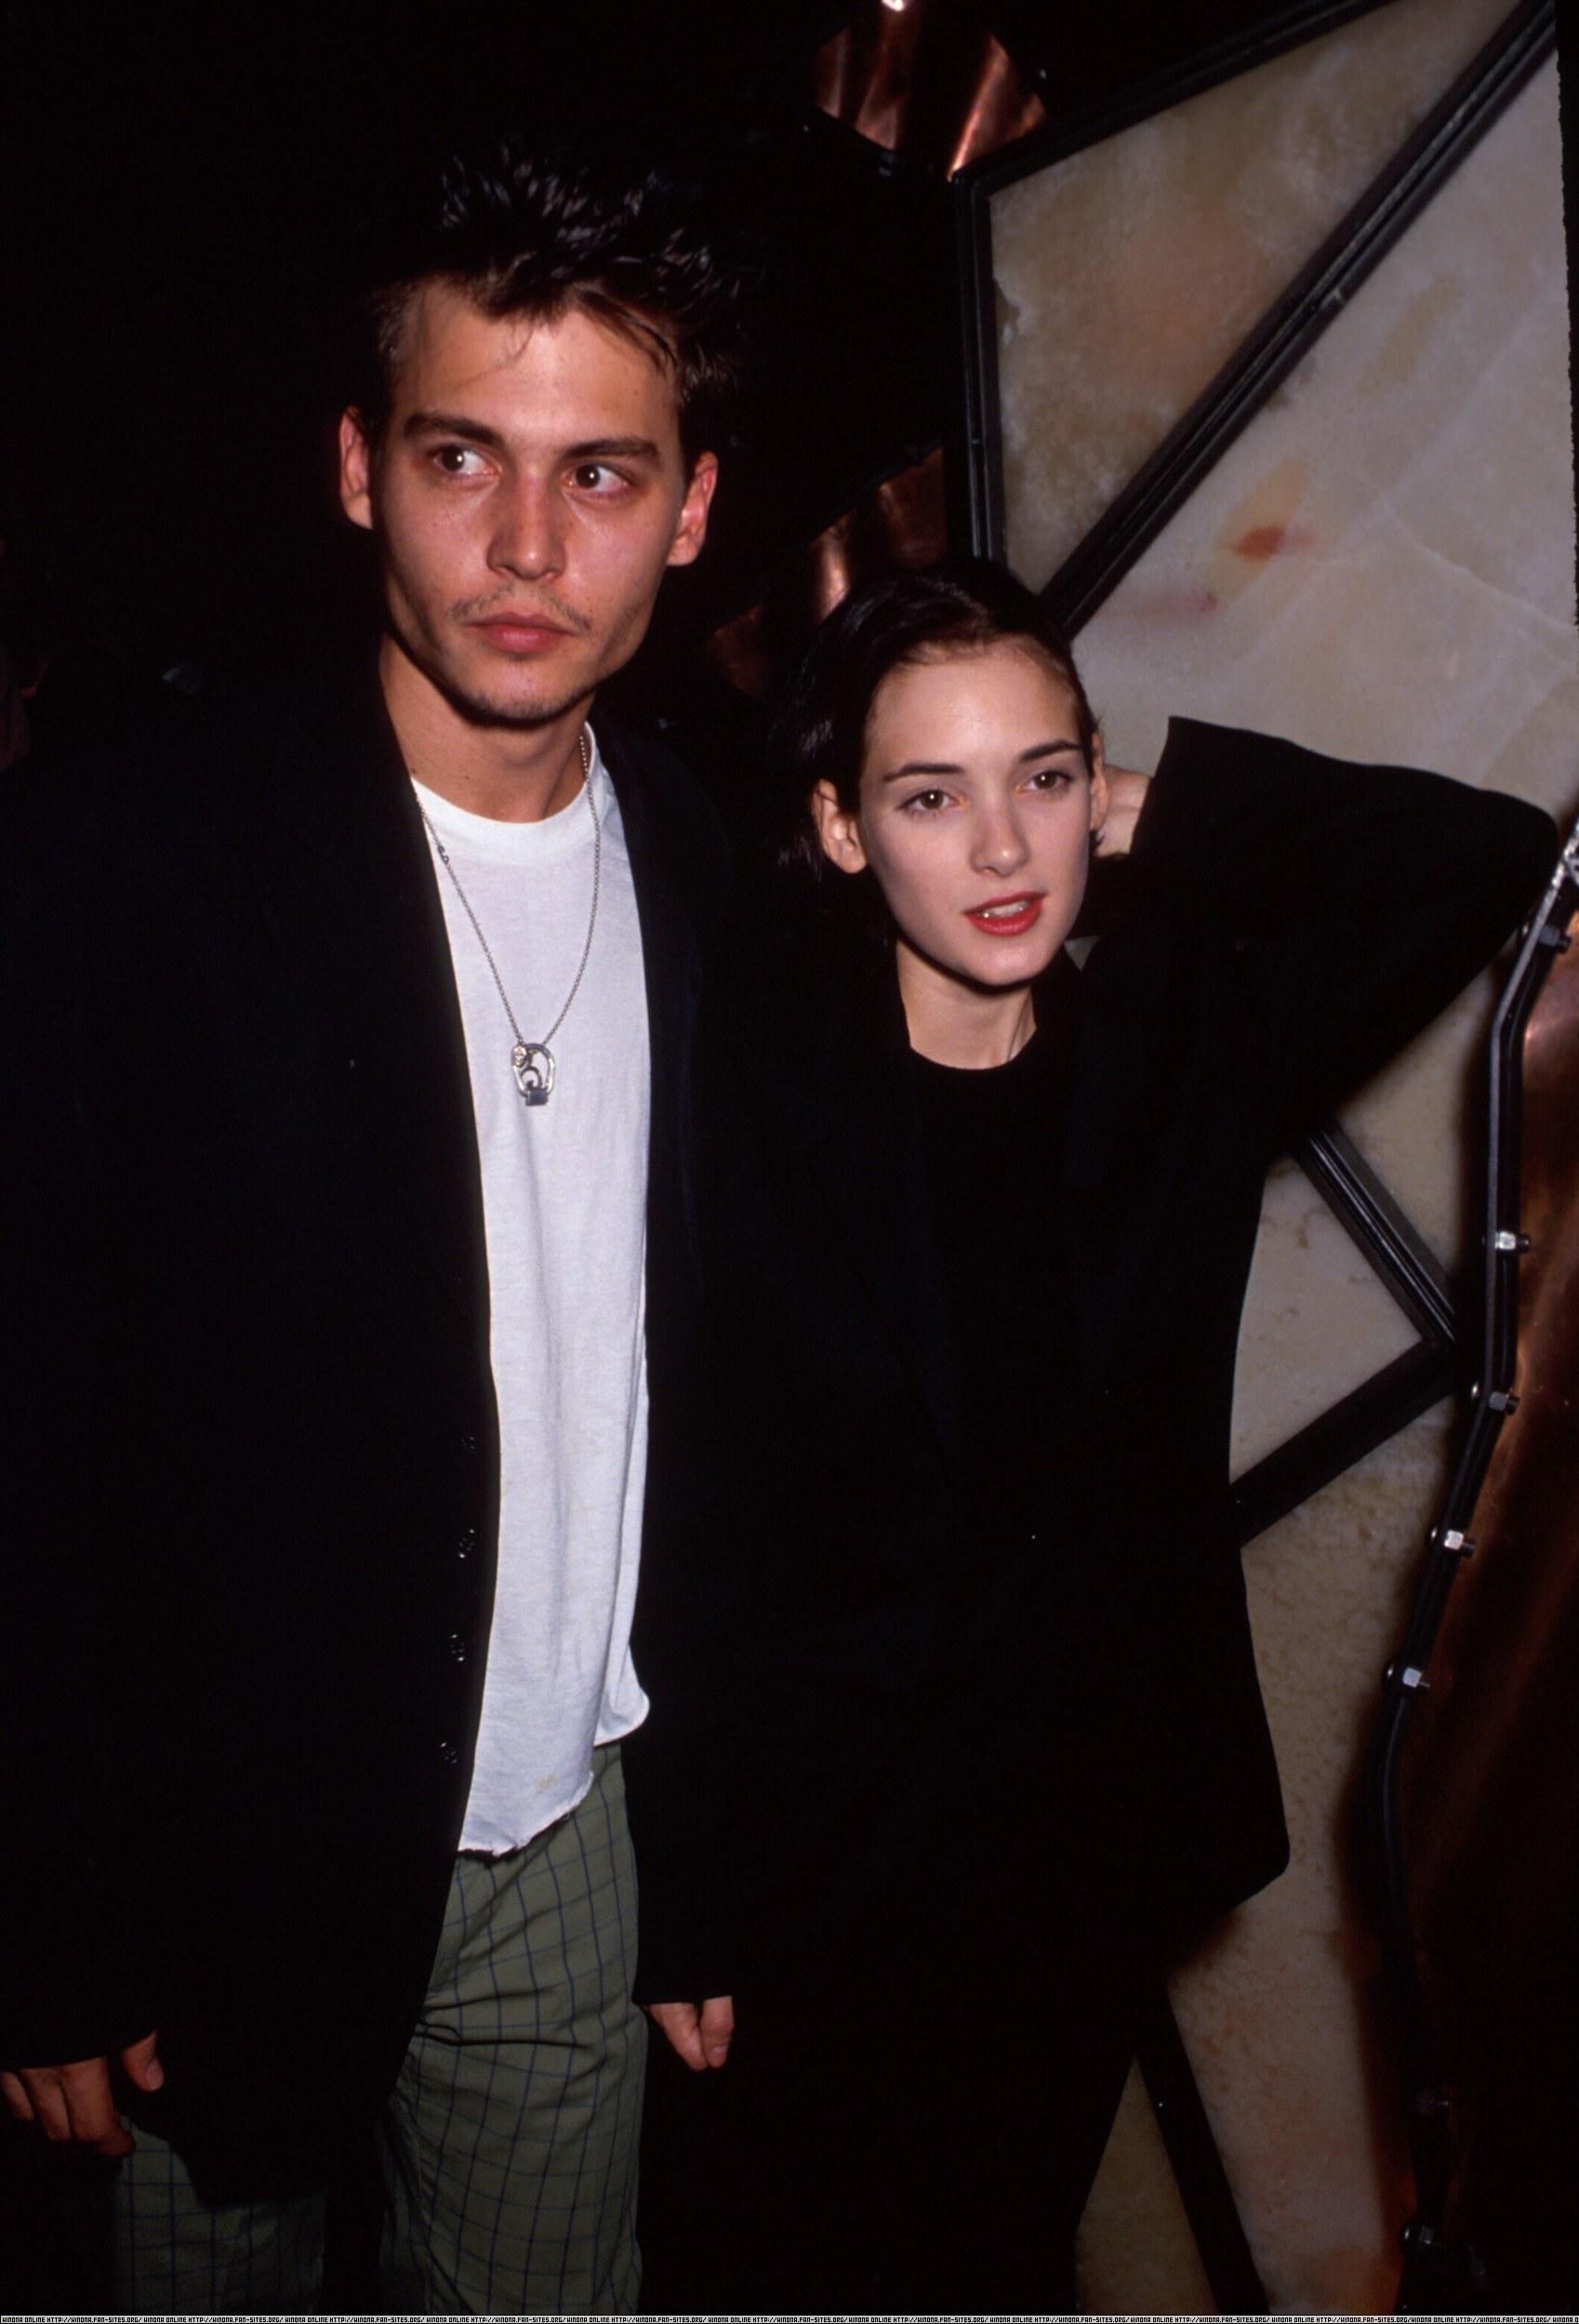 wynona mature singles Reality bites: why hollywood wouldn't let winona ryder grow up after a career spent playing misfits and ingenues,  single, poor, mentally ill.